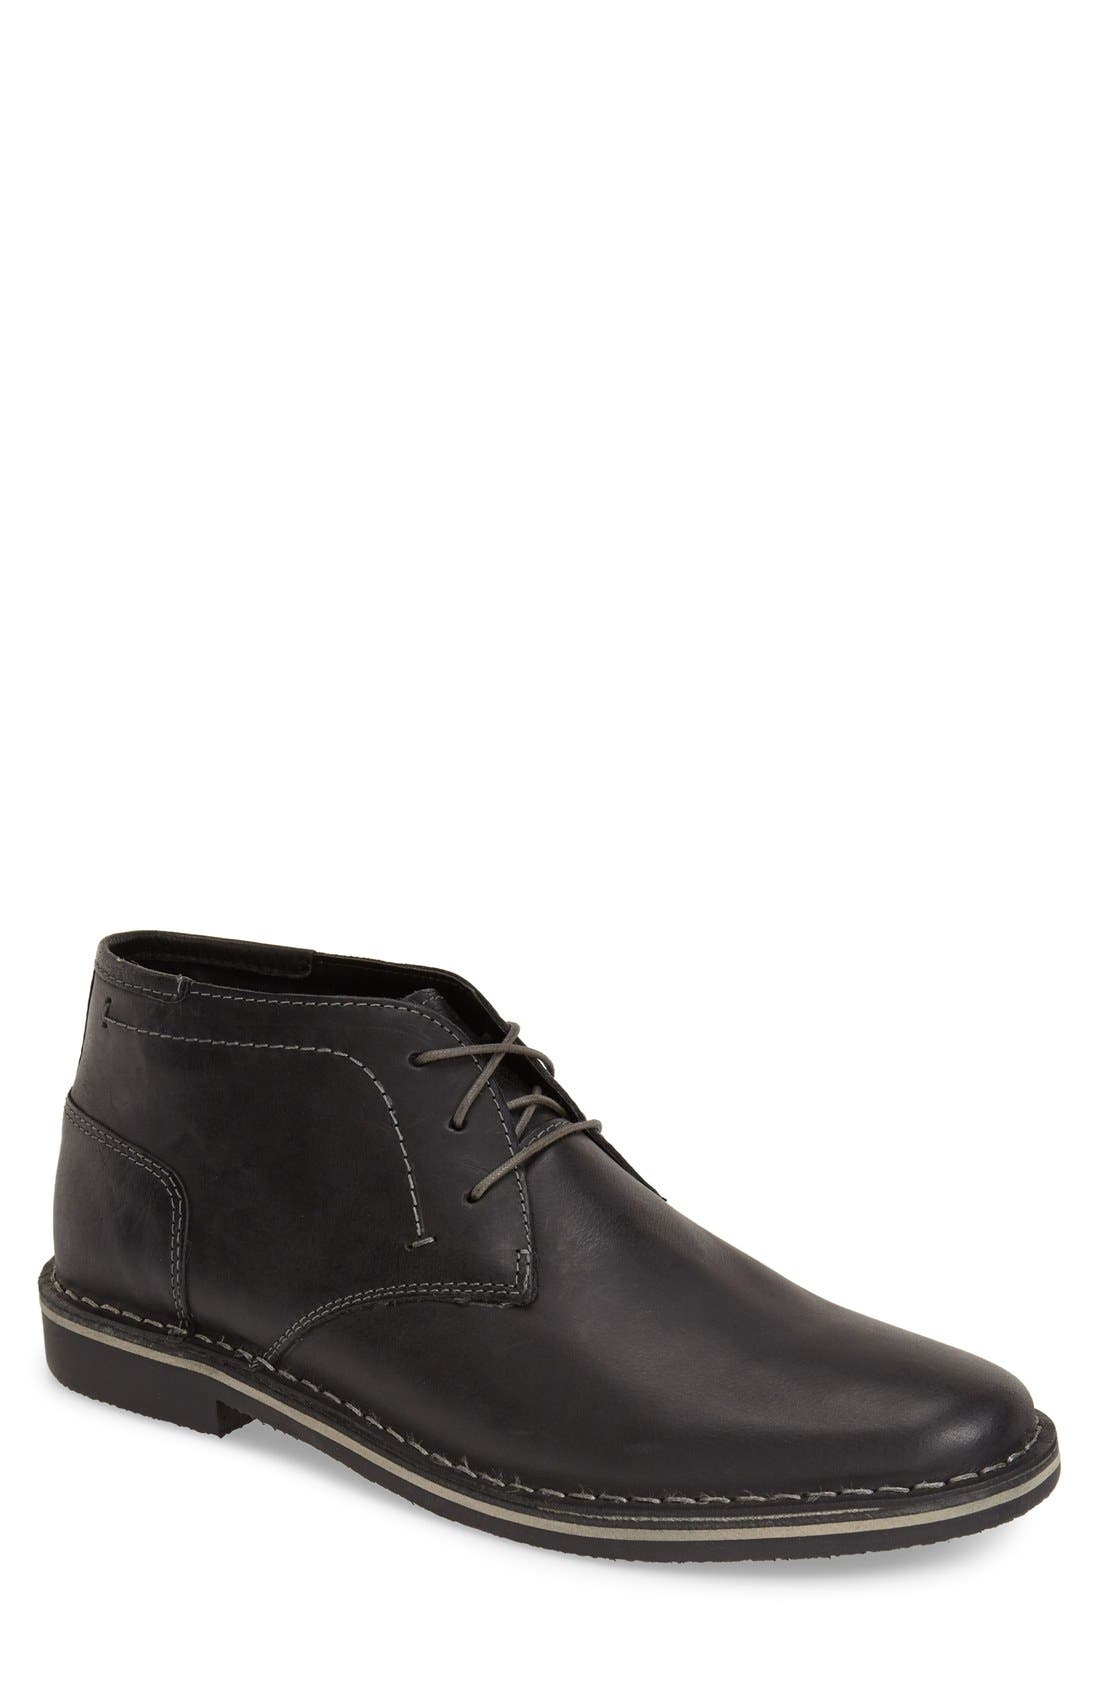 Alternate Image 1 Selected - Steve Madden 'Harken' Leather Chukka Boot (Men)